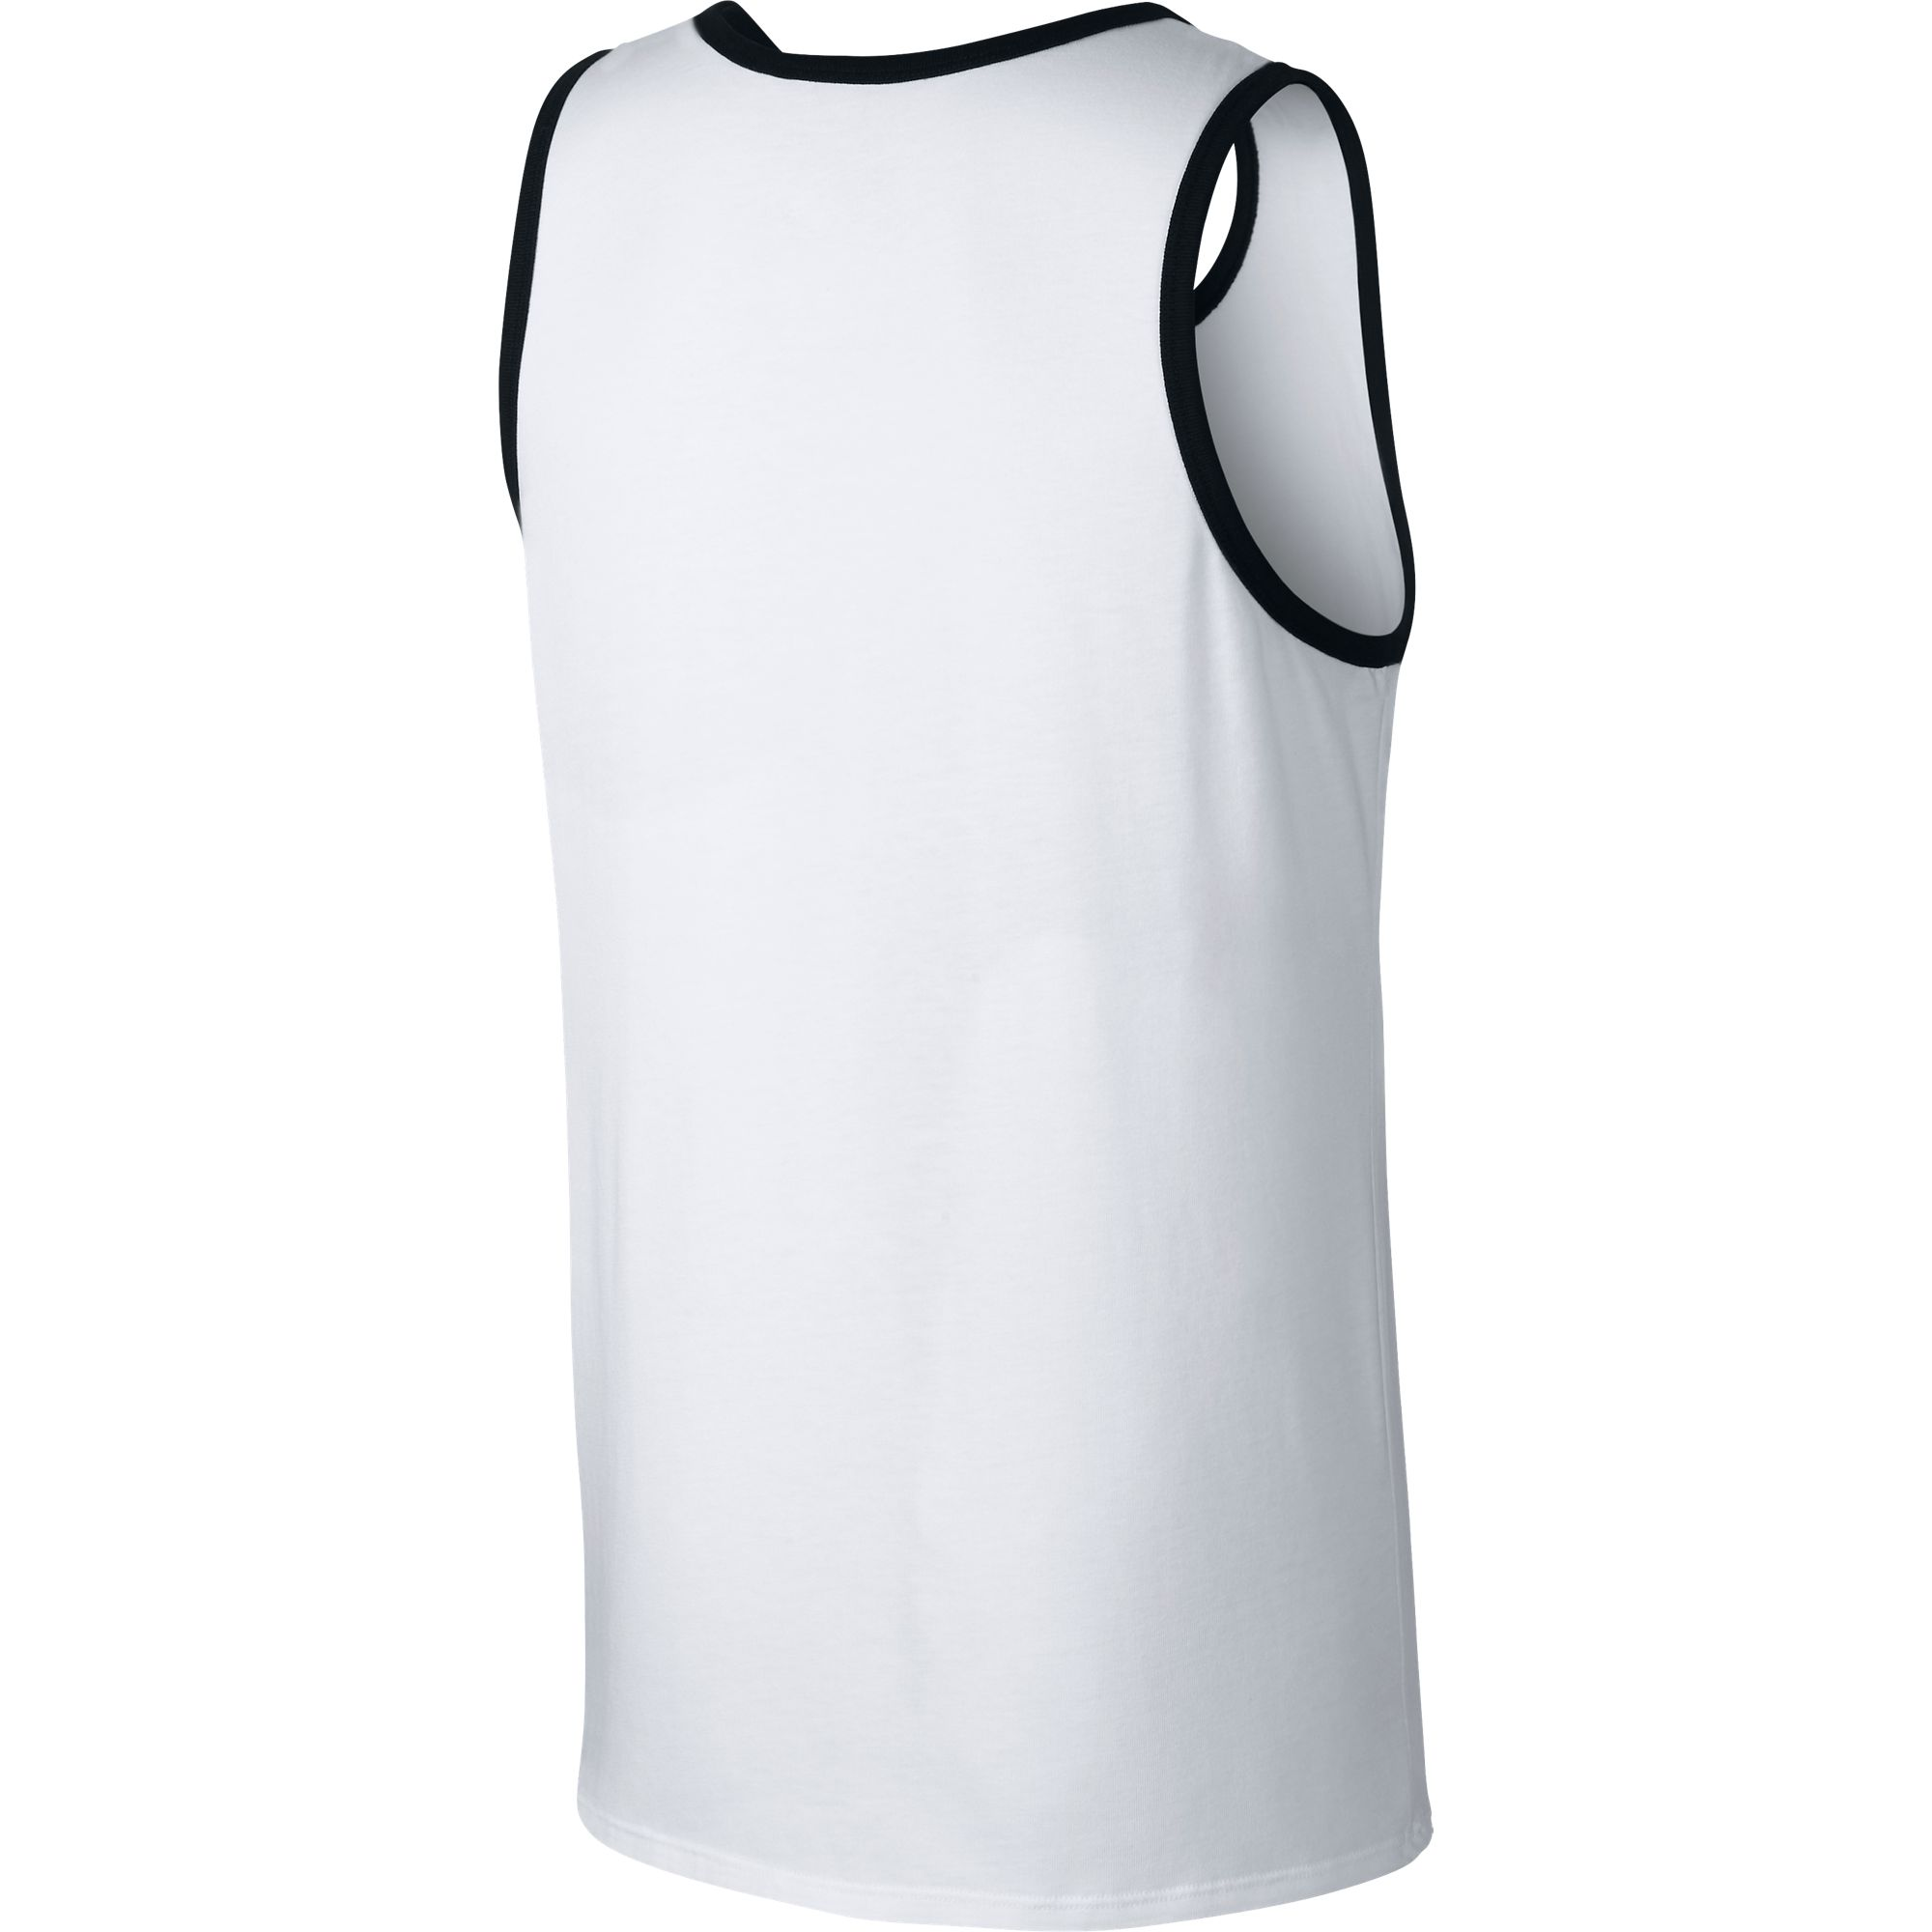 e282b1d28f5f4 Nike Ace Logo Men s Tank Top White Black Black 779234-100